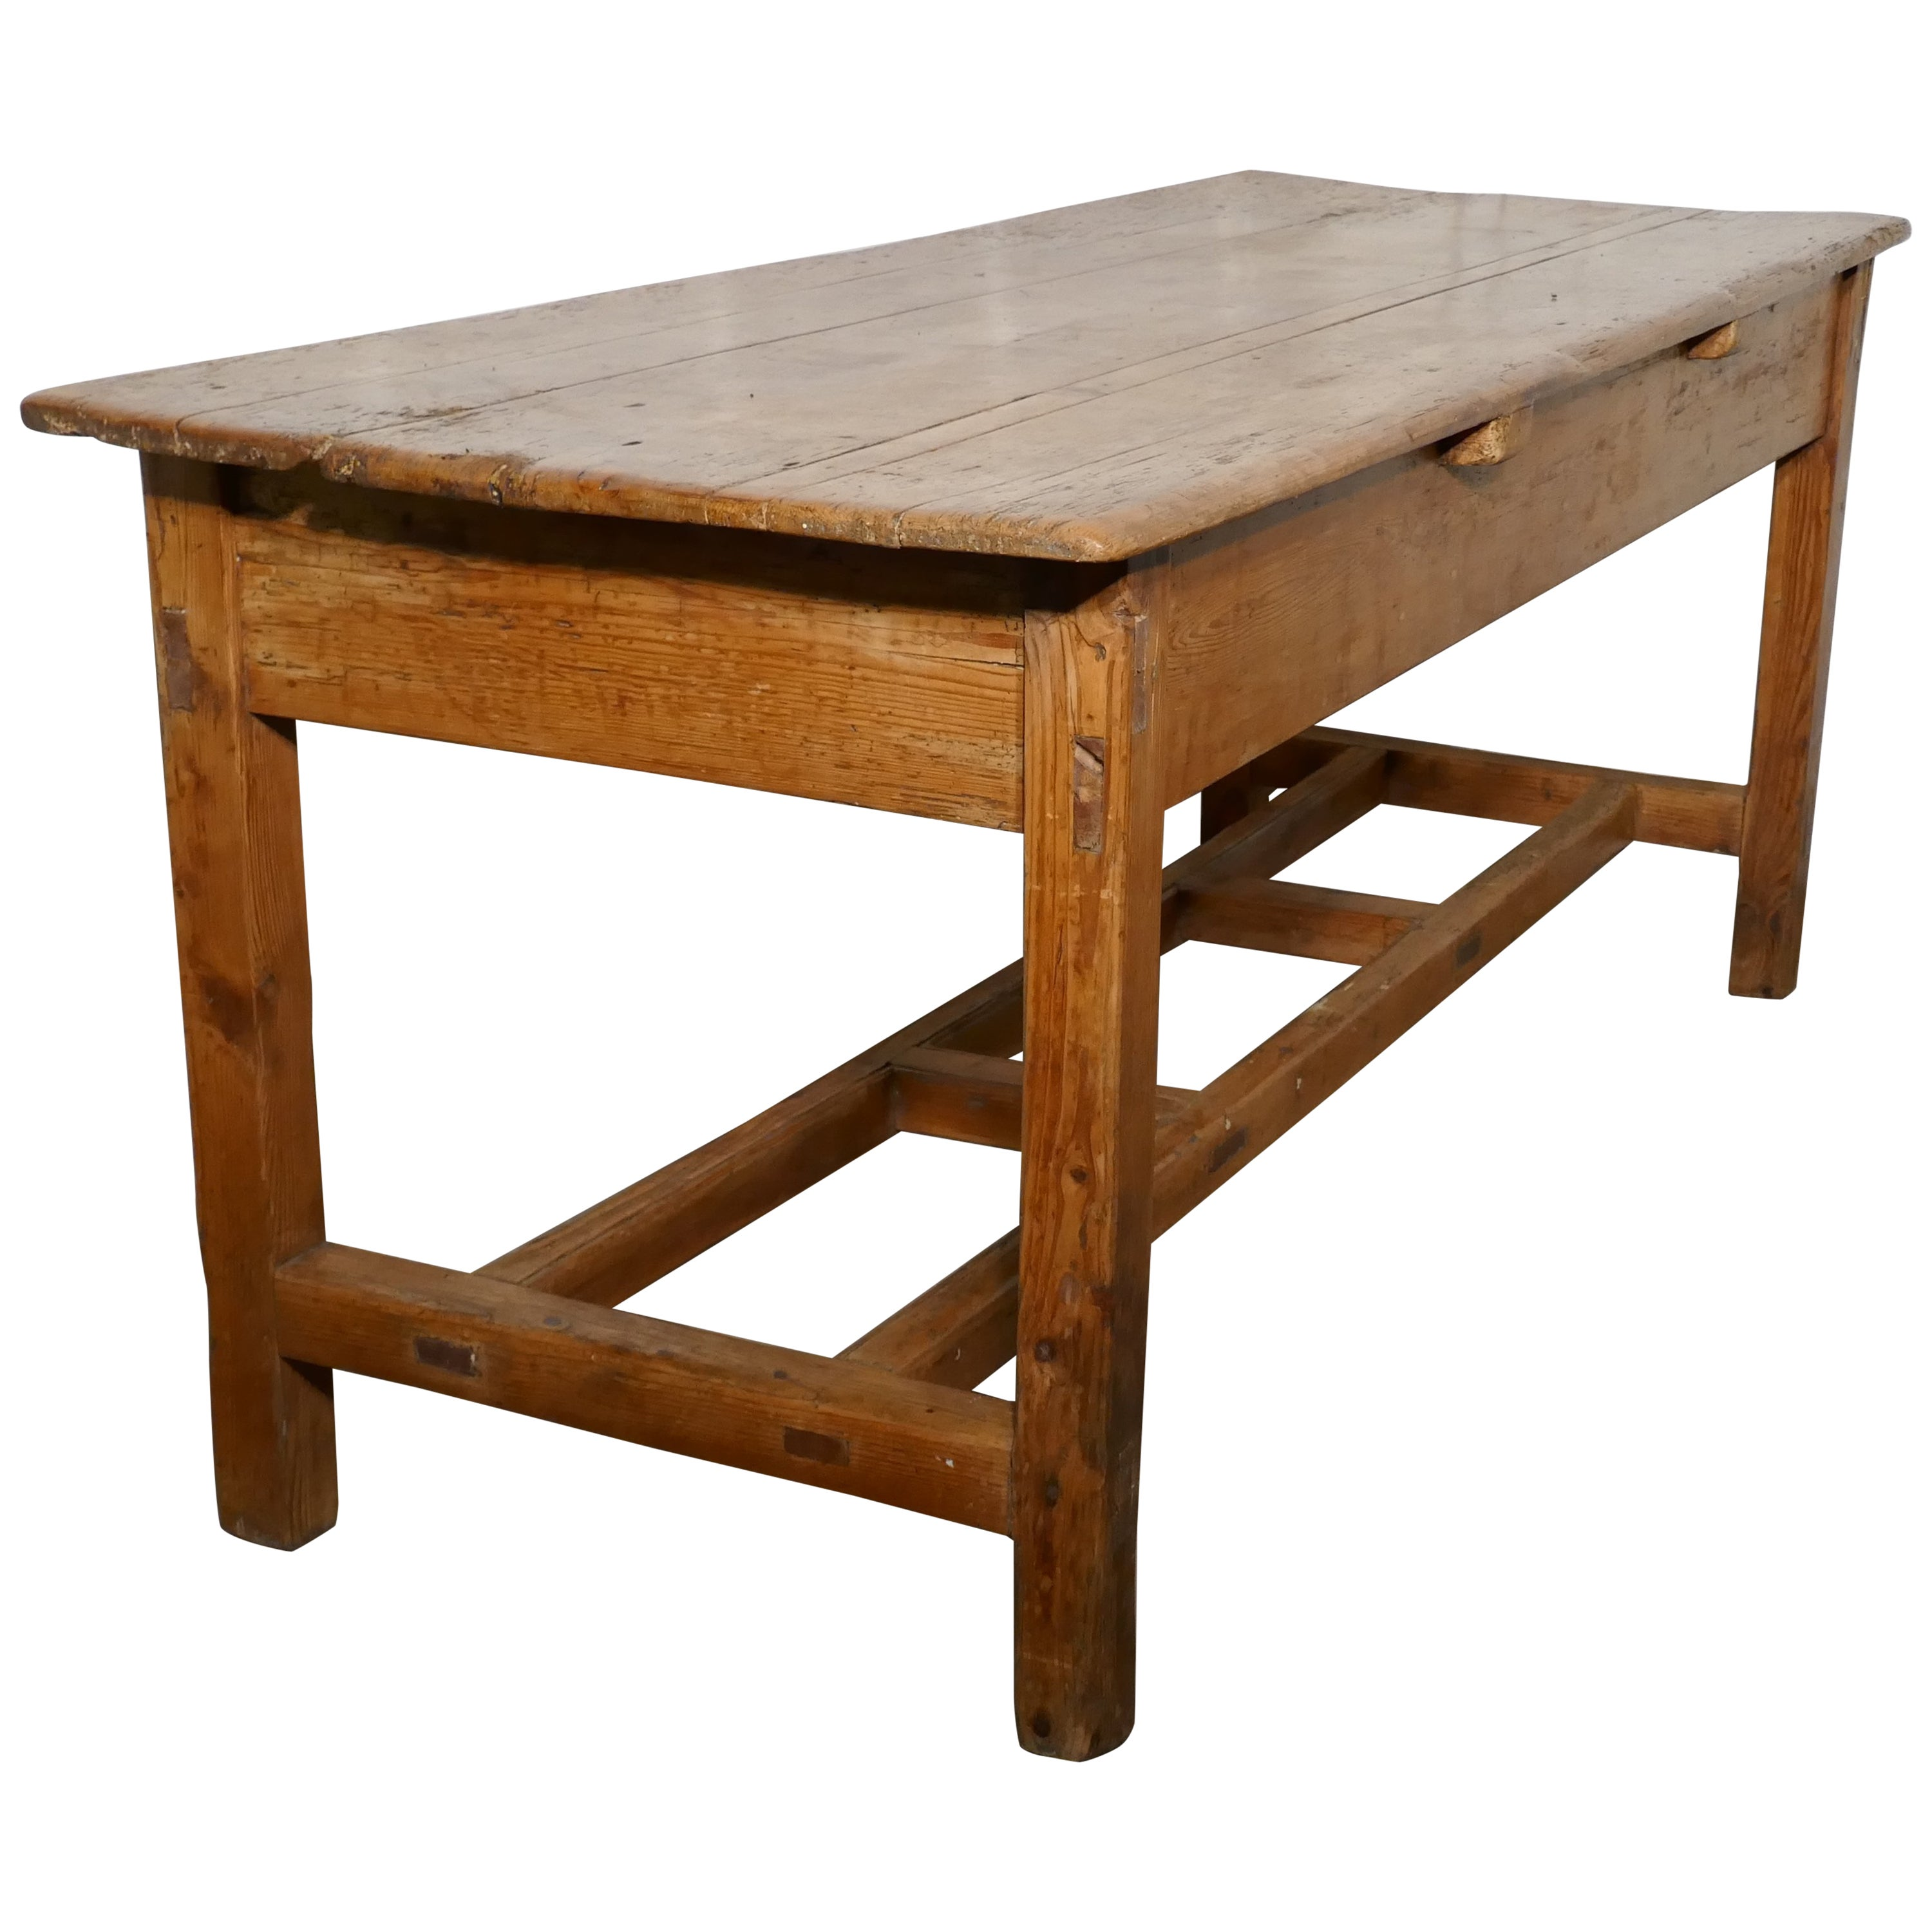 Charmant Sturdy Rustic Pine Farmhouse Table For Sale At 1stdibs